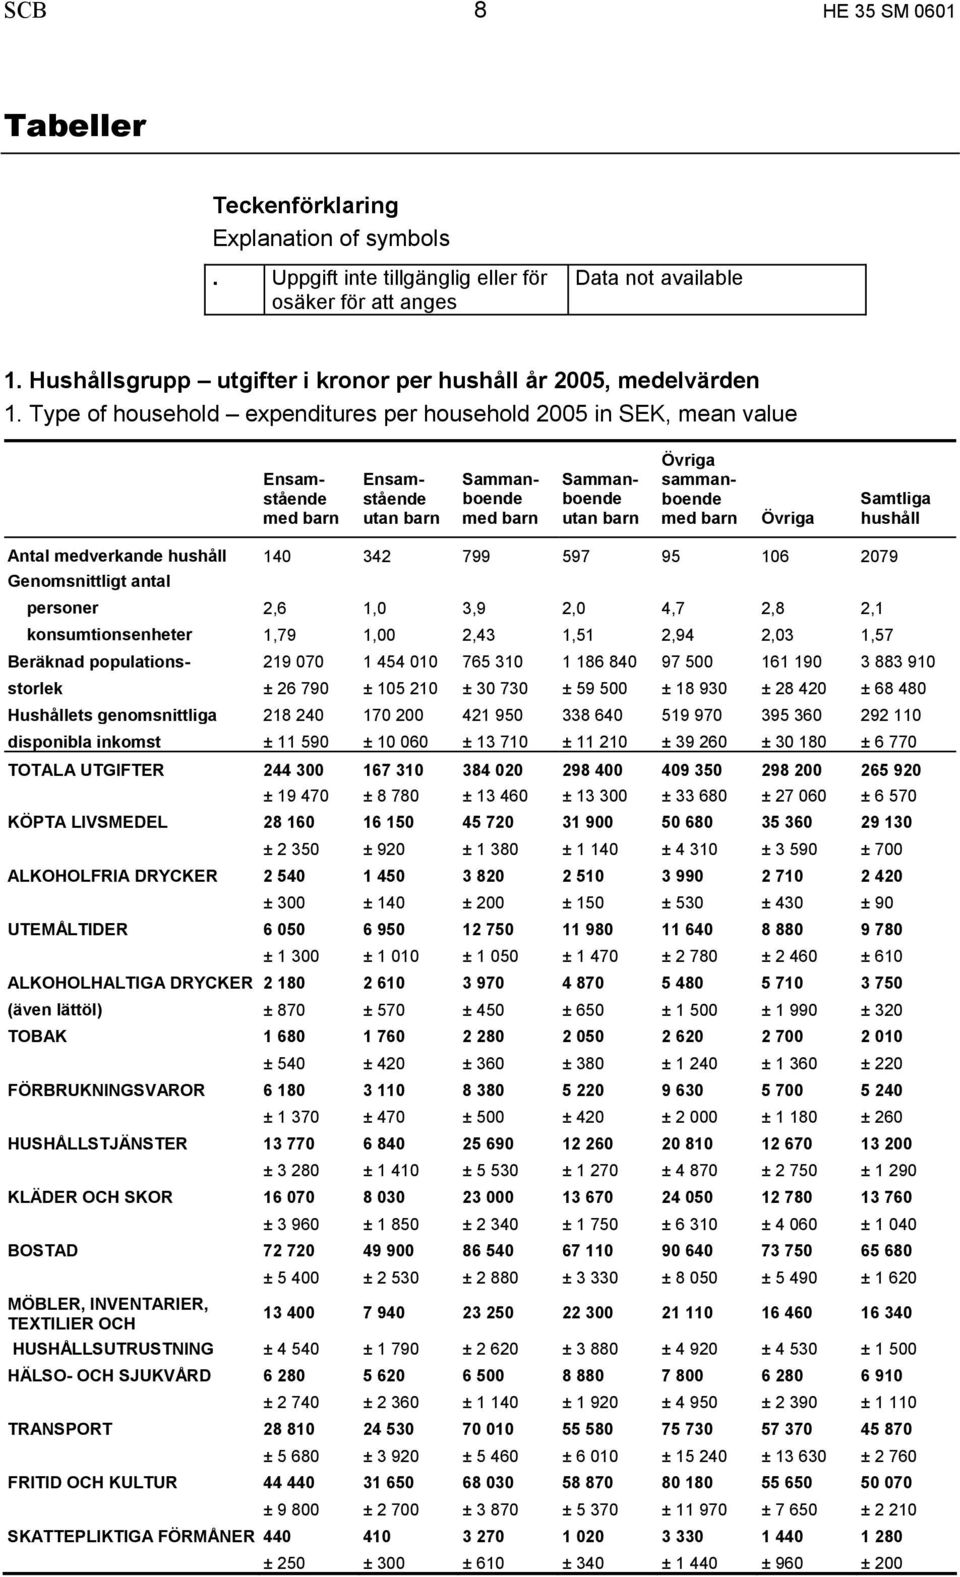 Type of household expenditures per household 2005 in SEK, mean value Ensamstående med barn Ensamstående utan barn Sammanboende med barn Sammanboende utan barn Övriga sammanboende med barn Övriga